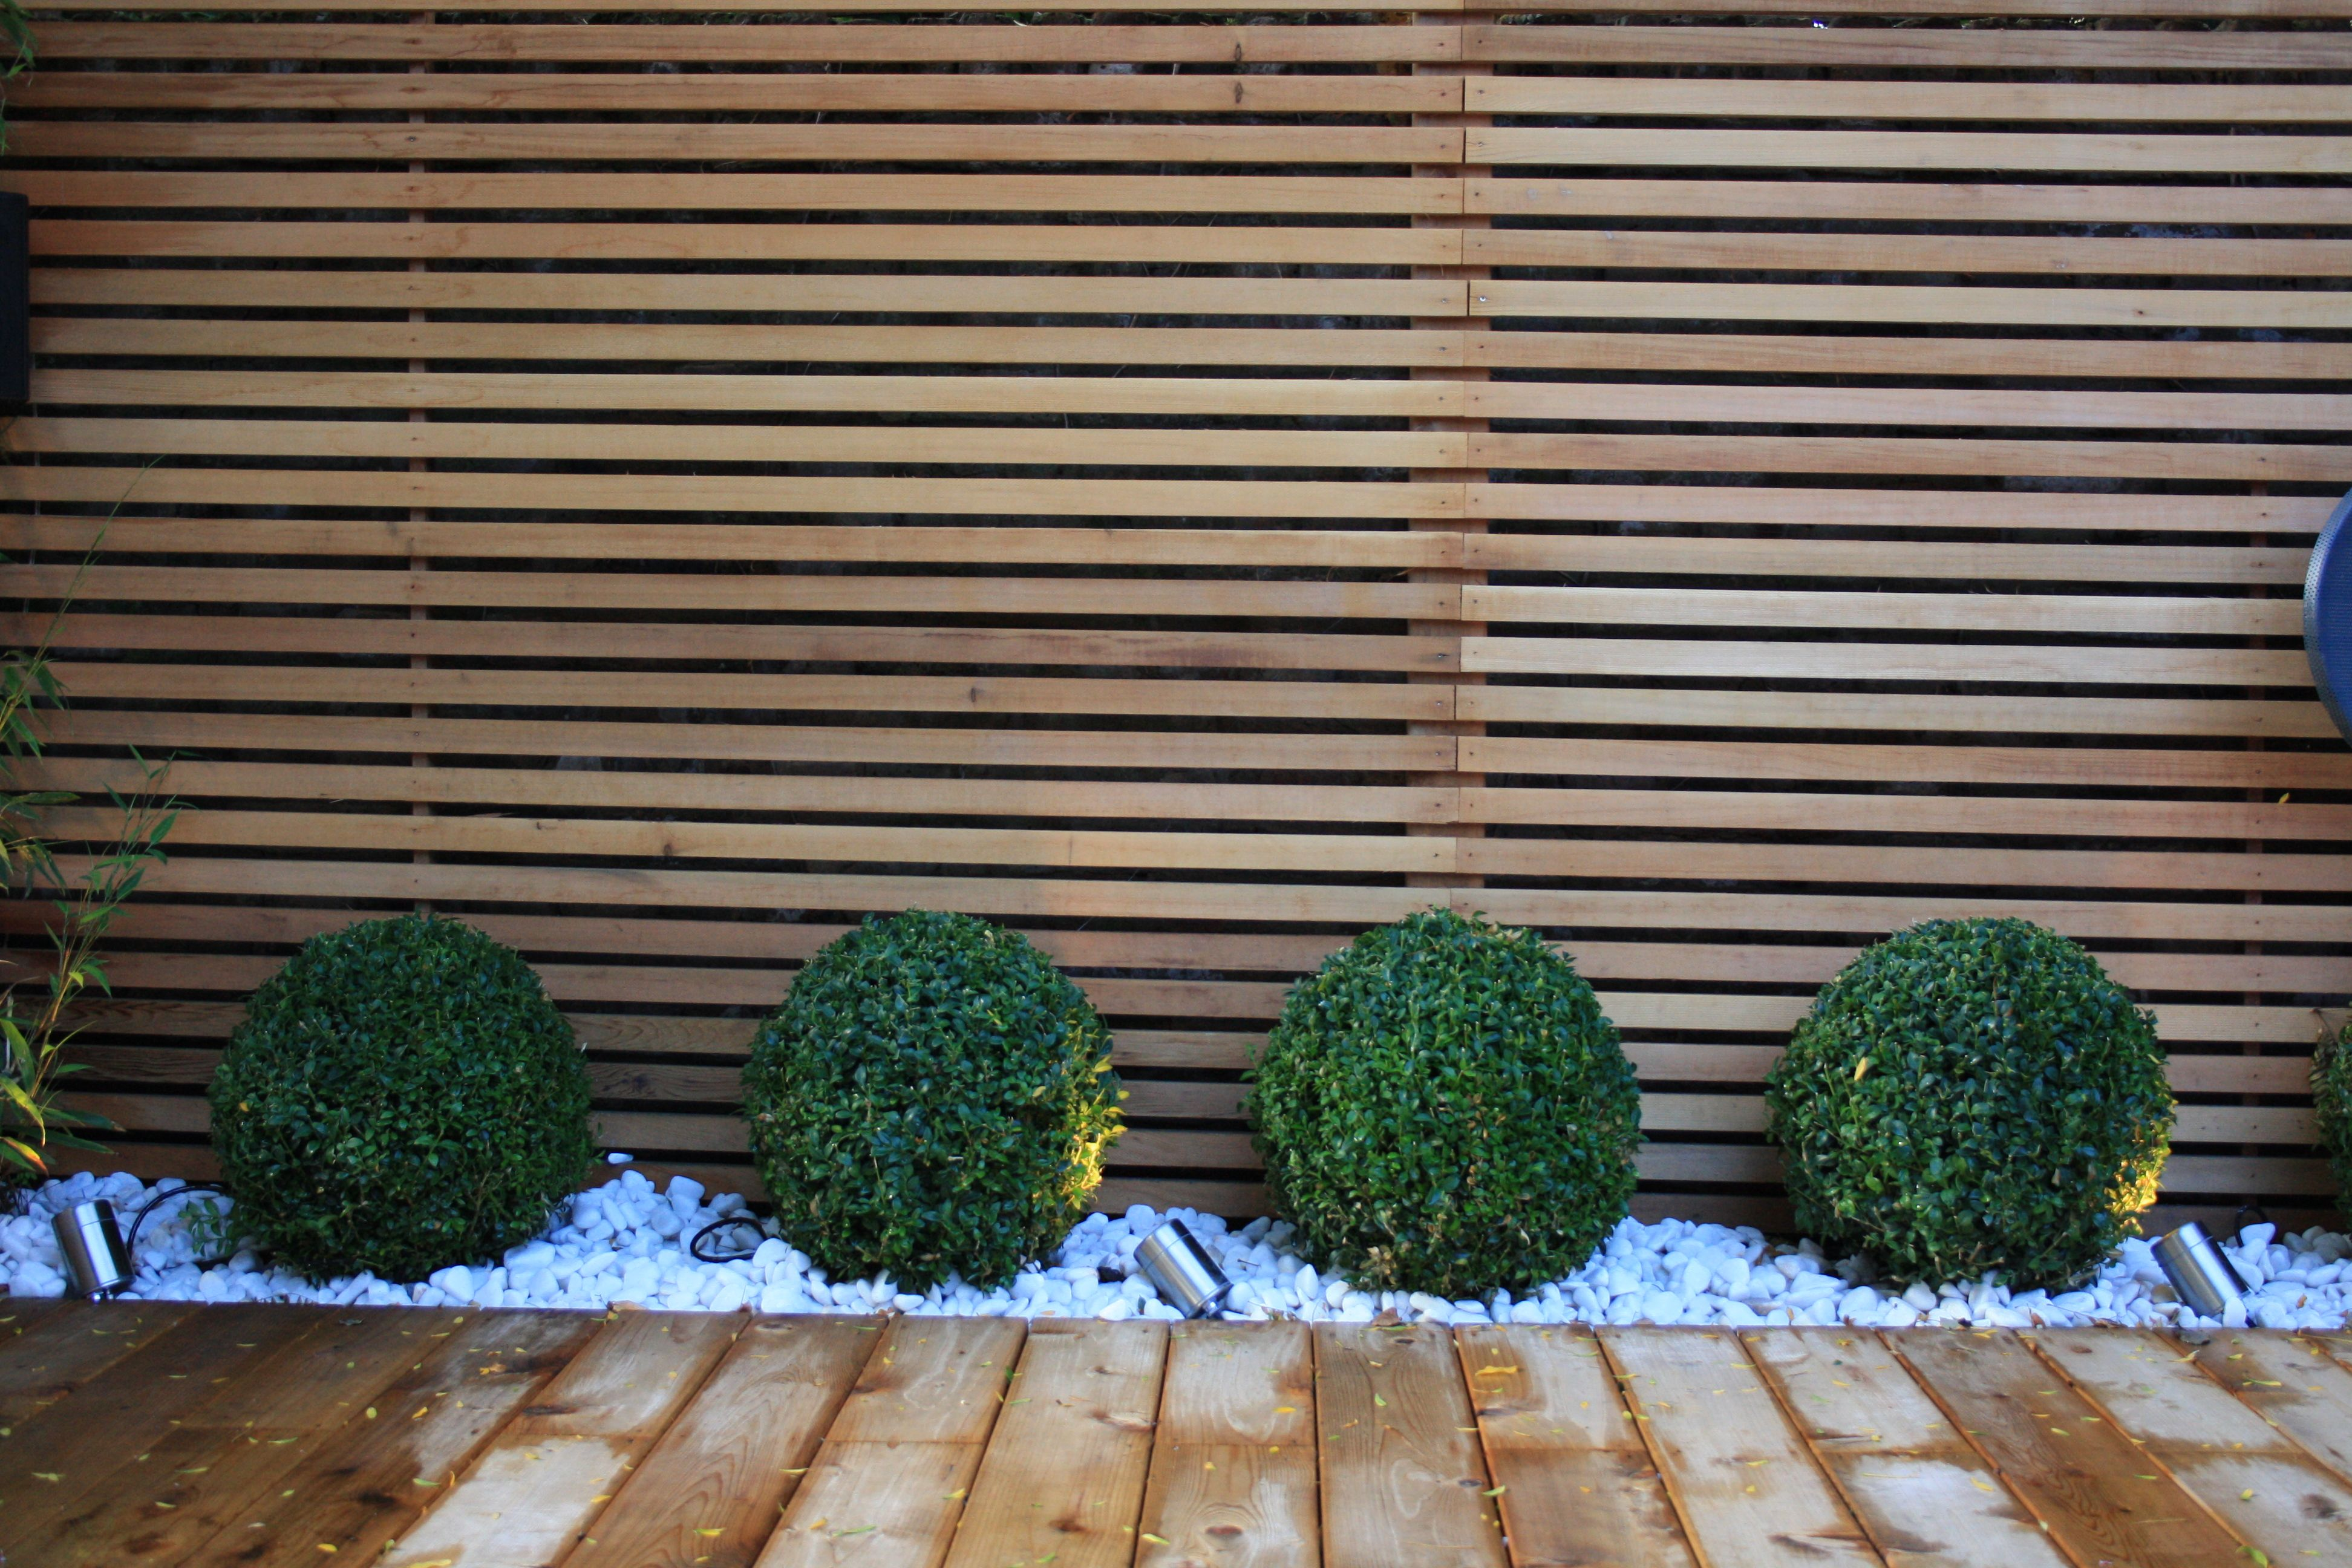 Garden Design Ideas For Small Spaces Lavender And Box Balls In A Gravel Bed Front Garden Design Contemporary Garden Design Small Gardens